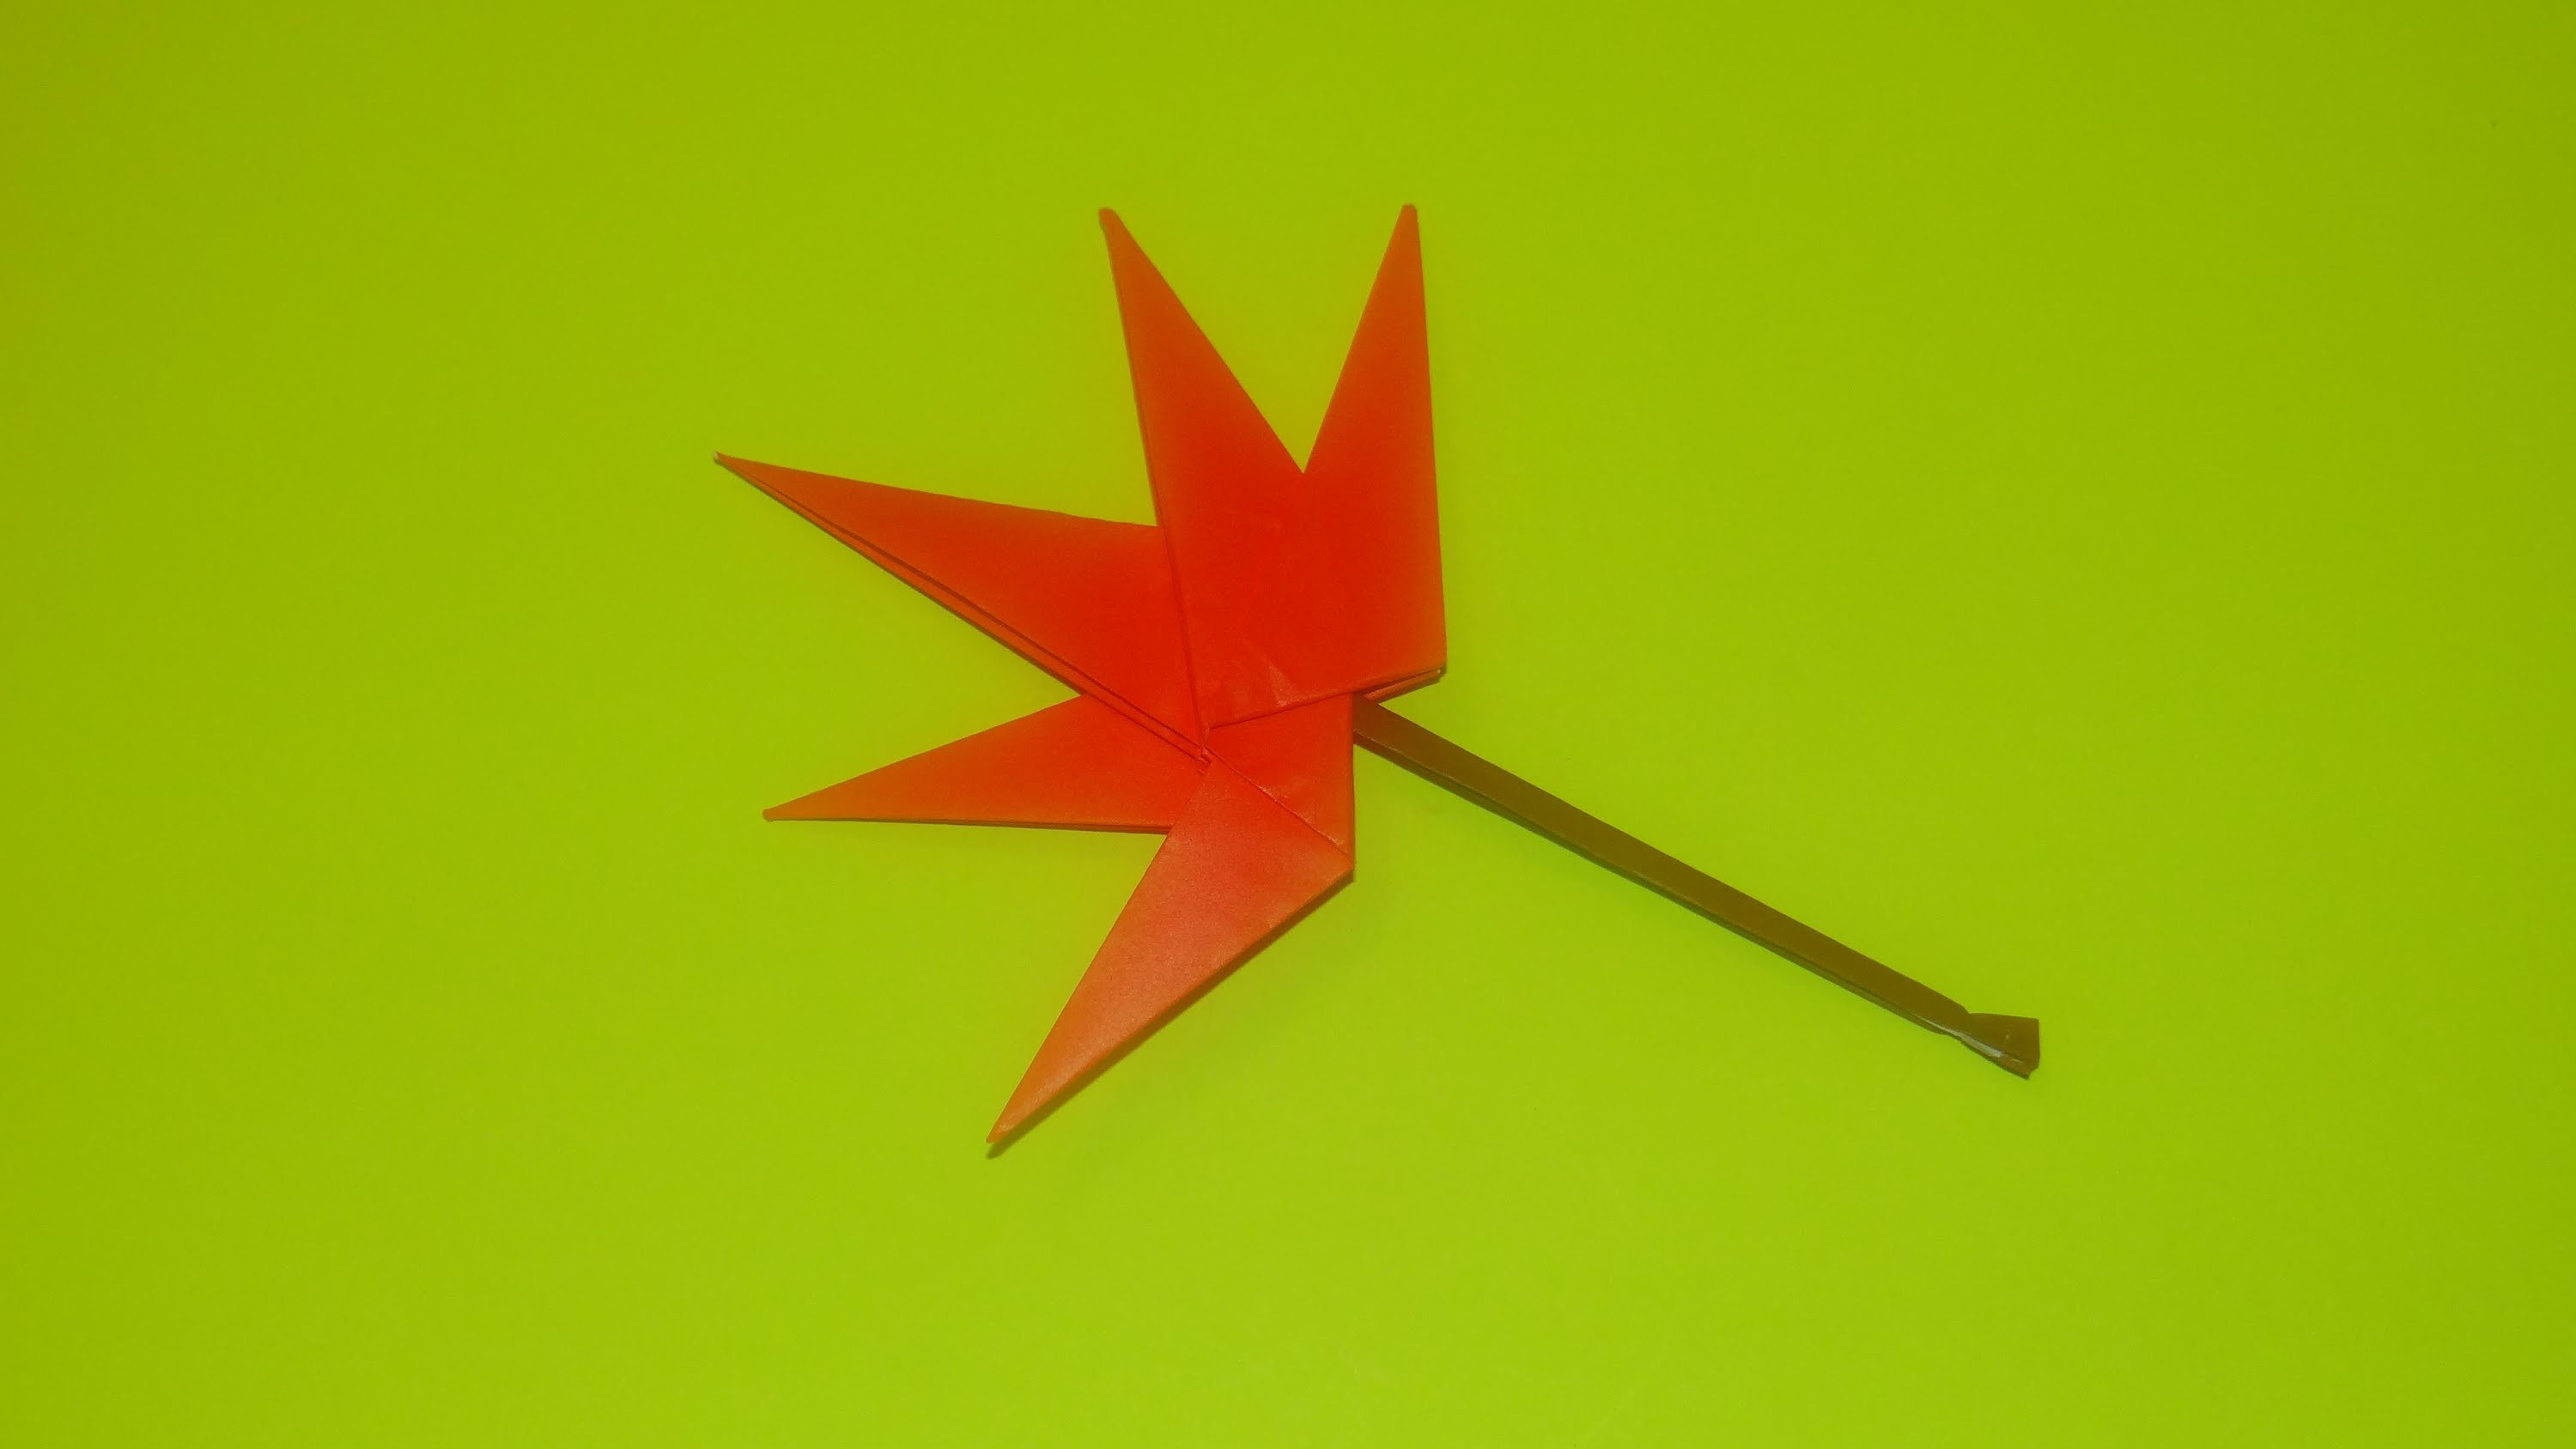 How To Make An Origami Maple Leaf